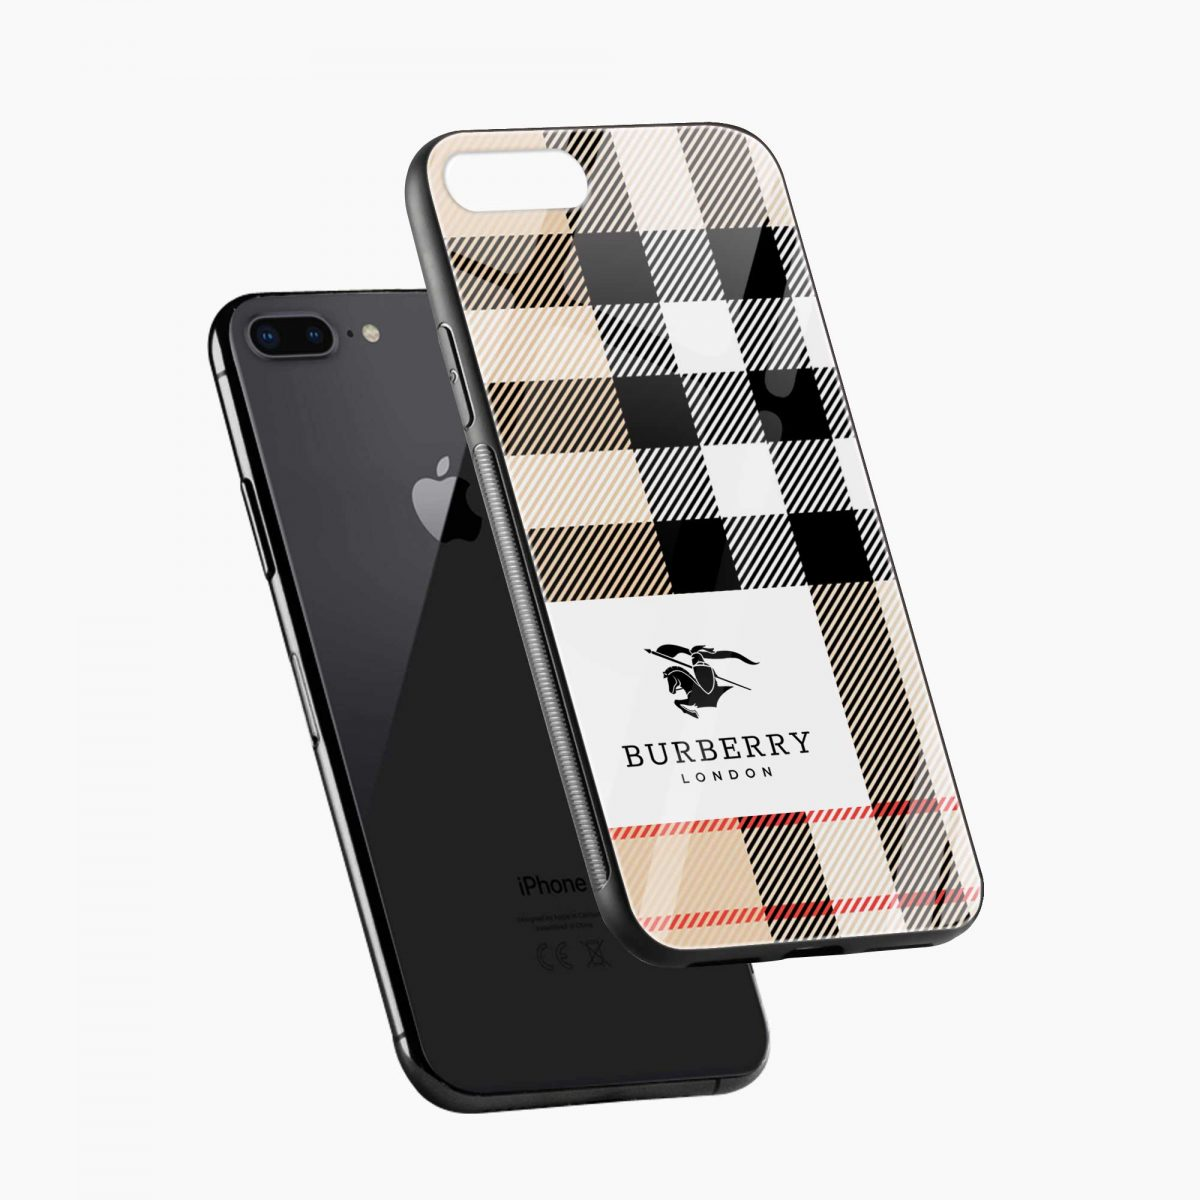 burberry cross lines pattern diagonal view apple iphone 7 8 plus back cover